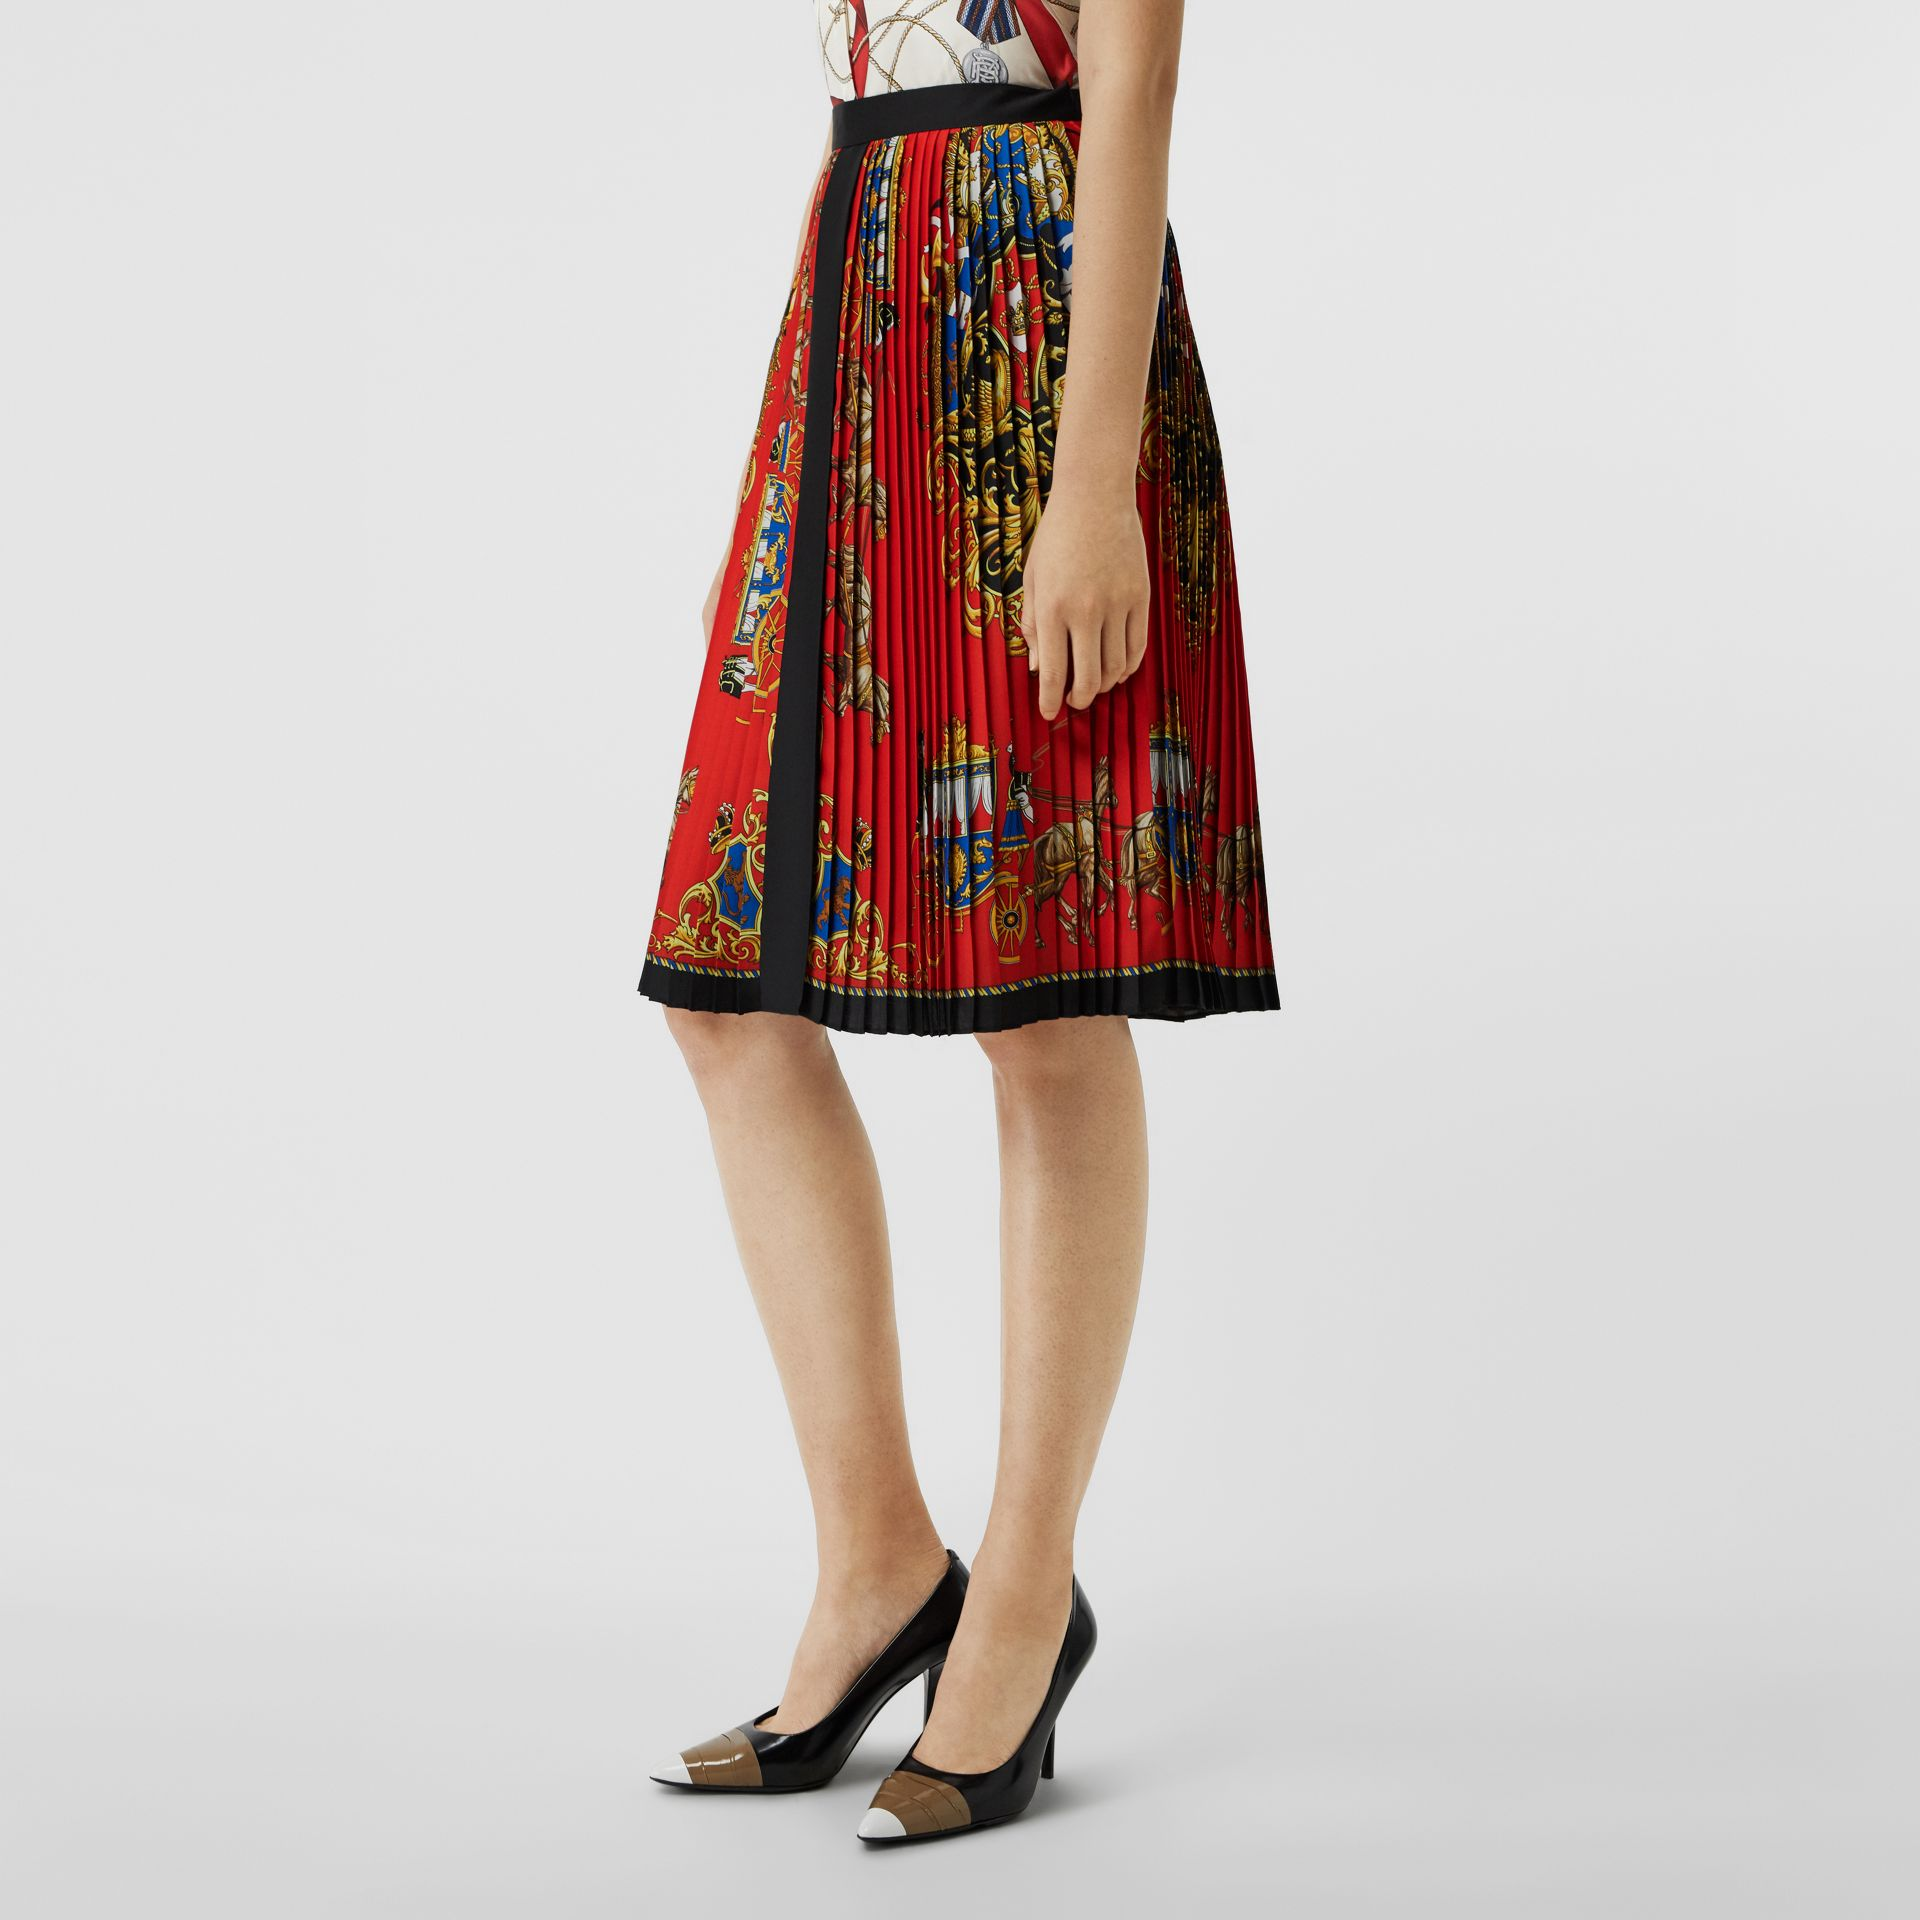 Archive Scarf Print Pleated Skirt in Bright Orange - Women | Burberry United States - gallery image 4